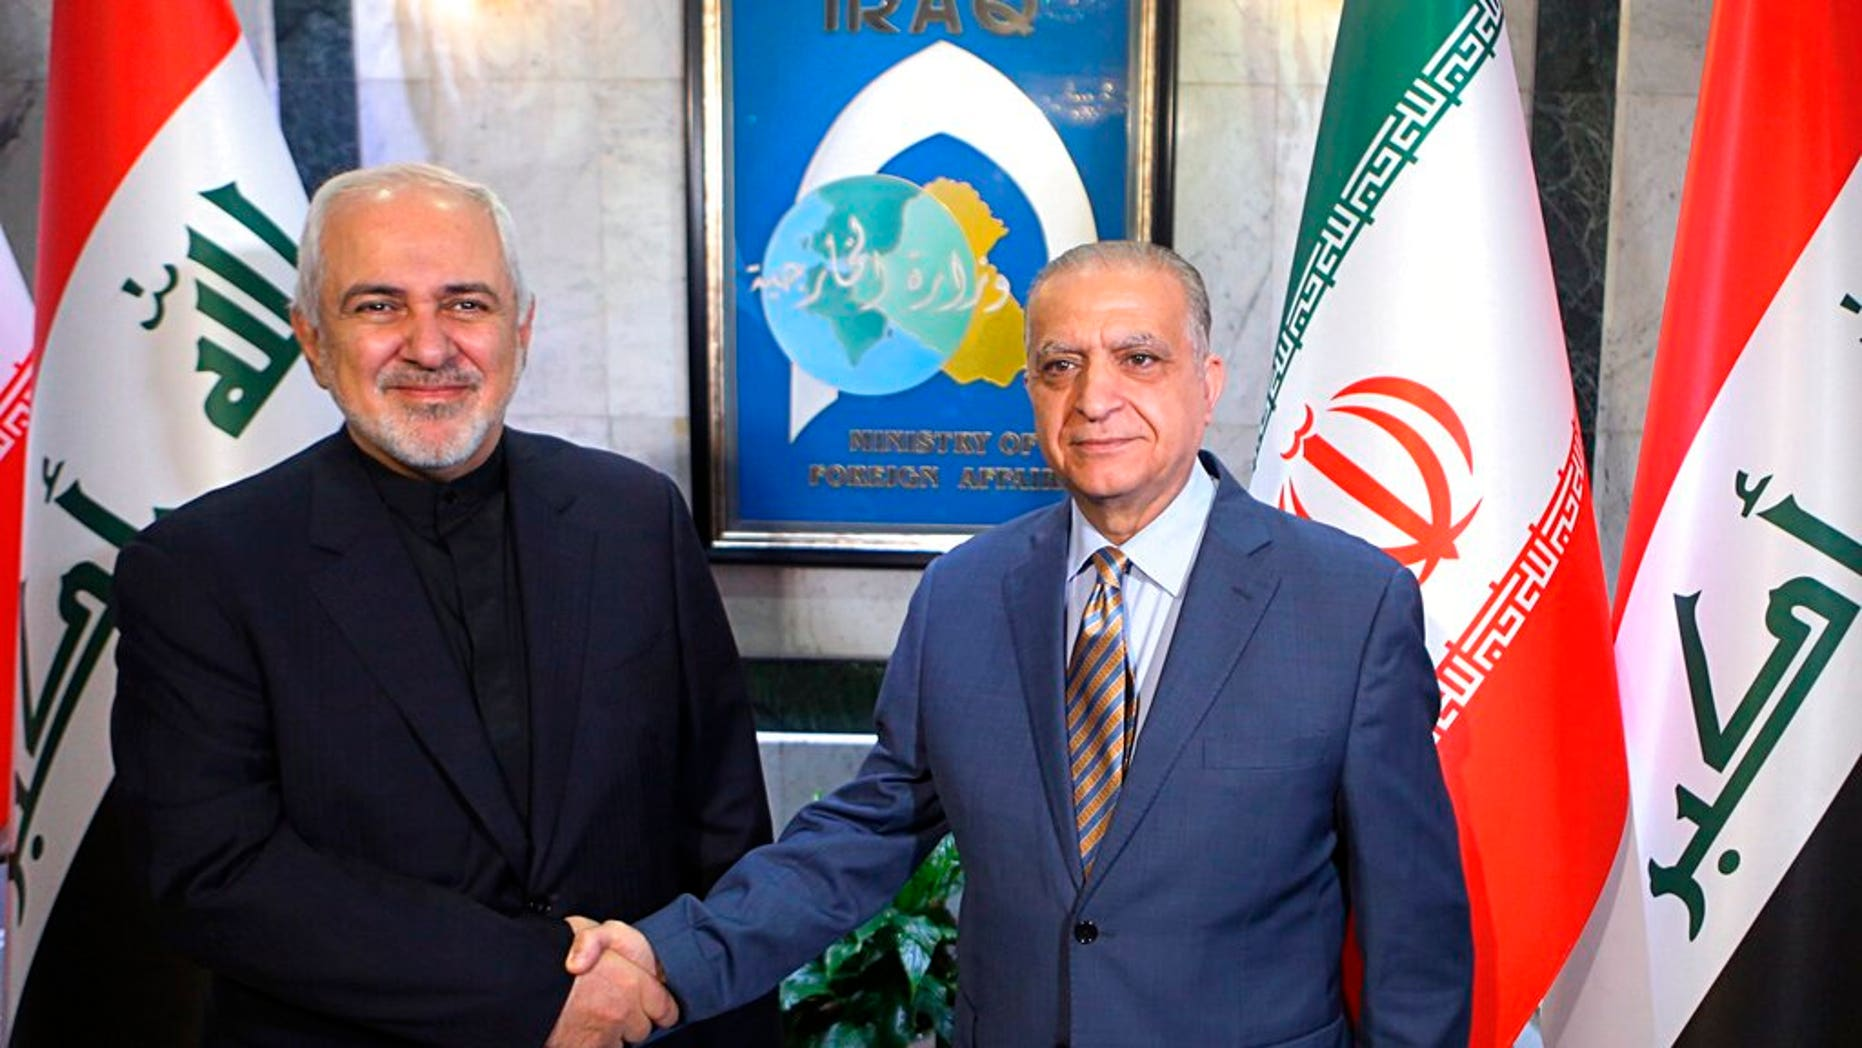 Iraqi Foreign Minister Mohamed Alhakim, right, shakes hands with his visiting Iranian counterpart Mohammad Javad Zarif at the Ministry of Foreign Affairs Building in Baghdad, Iraq.